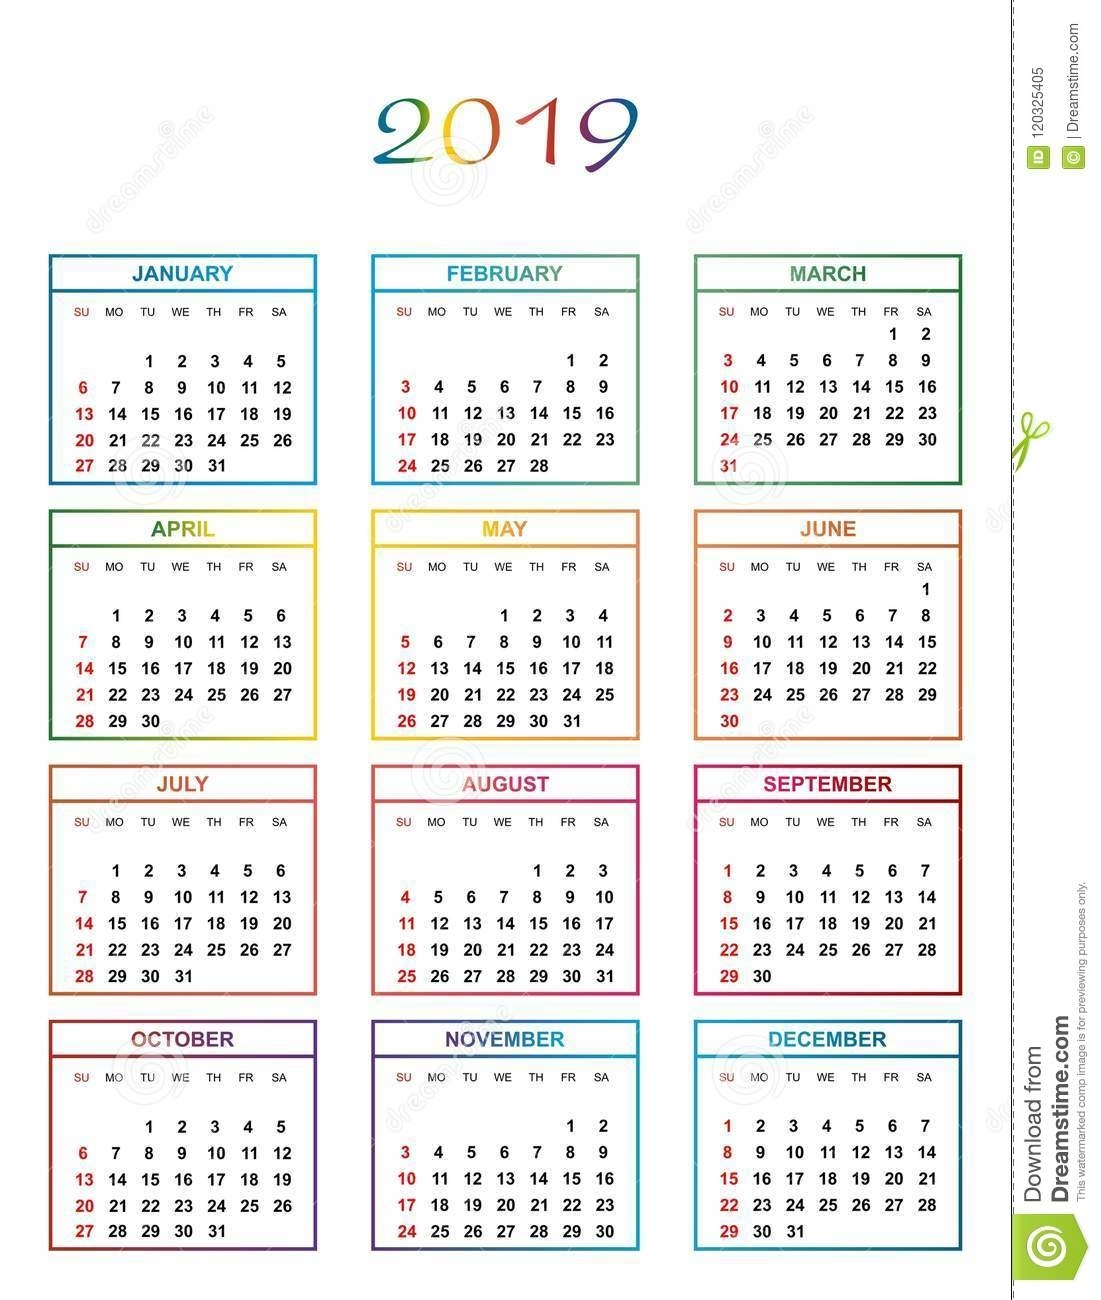 Simple Color Calendar For The Year 2019 With Name Of Day